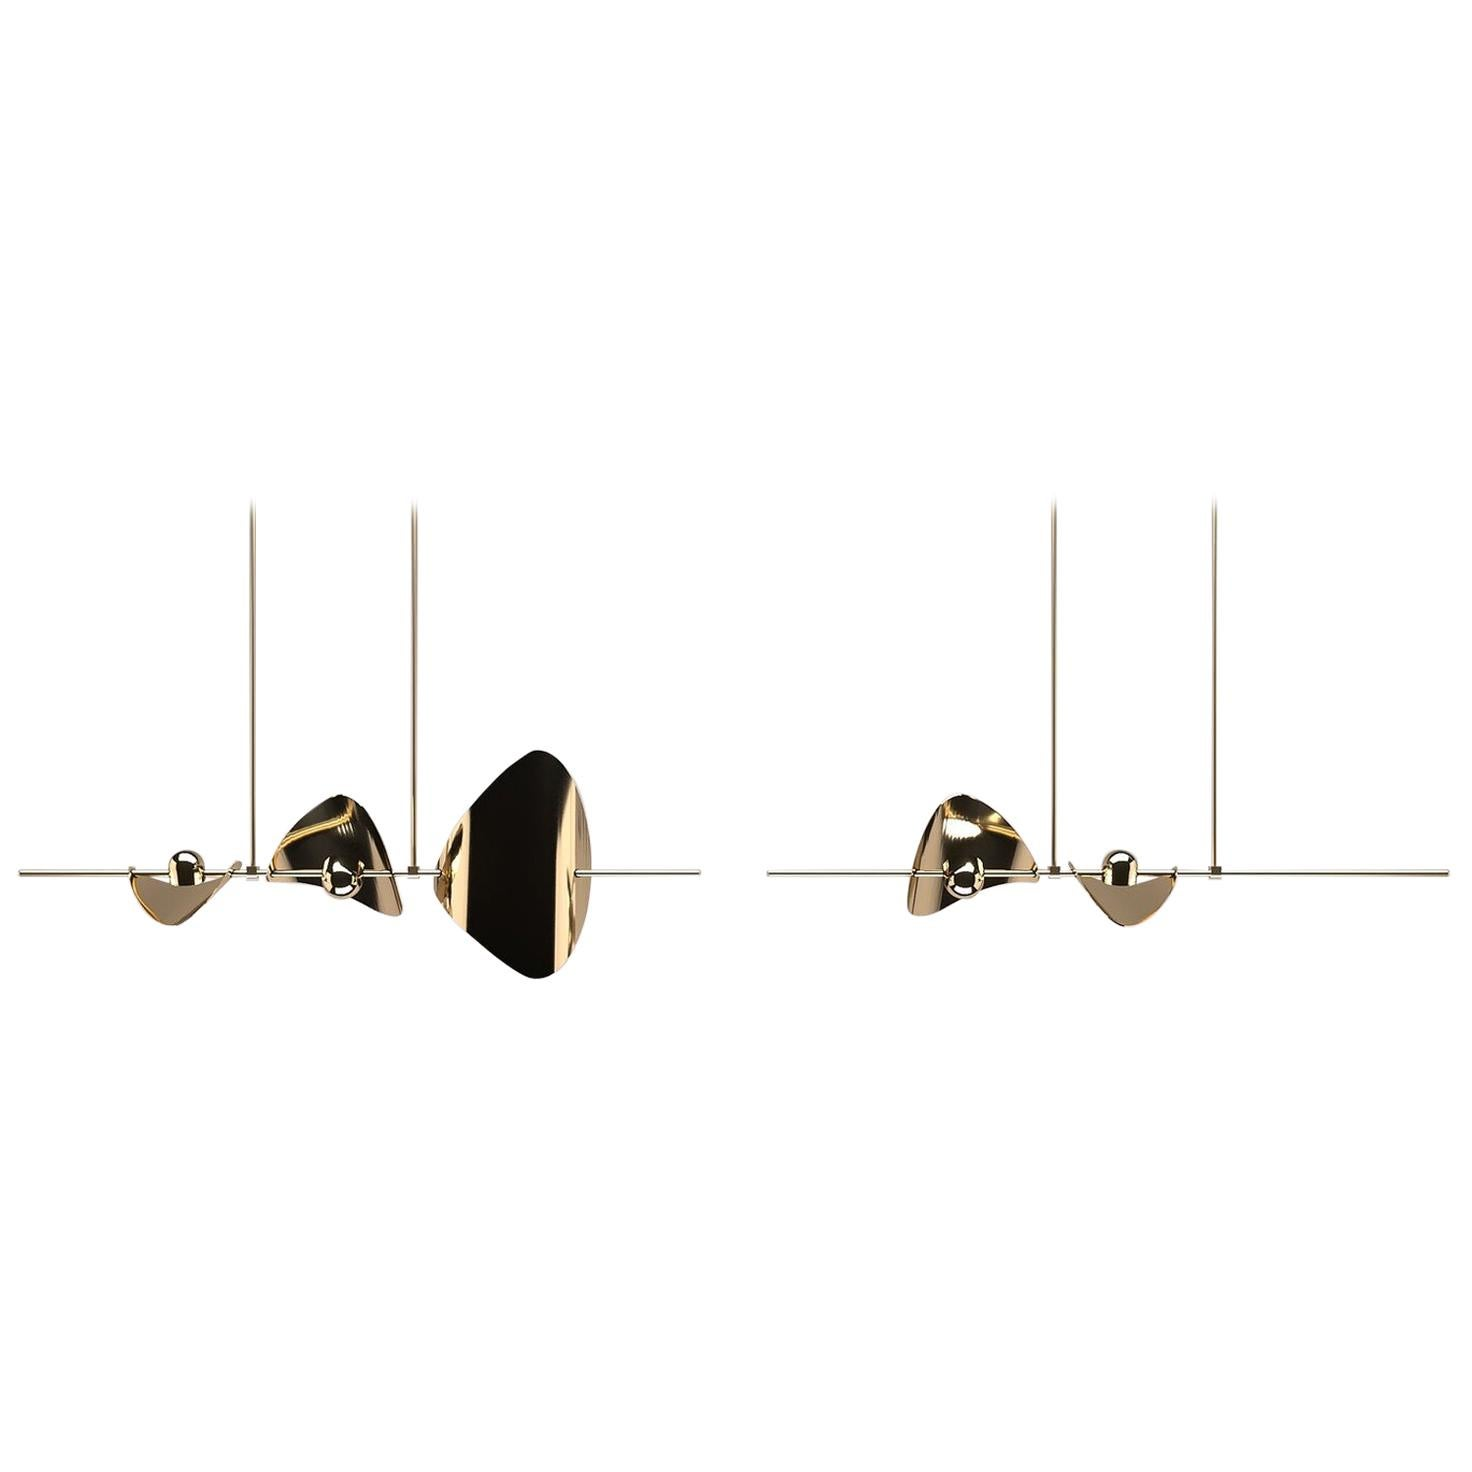 Bonnie Config. 4 Contemporary LED Chandelier, Solid Brass or Chromed, Small